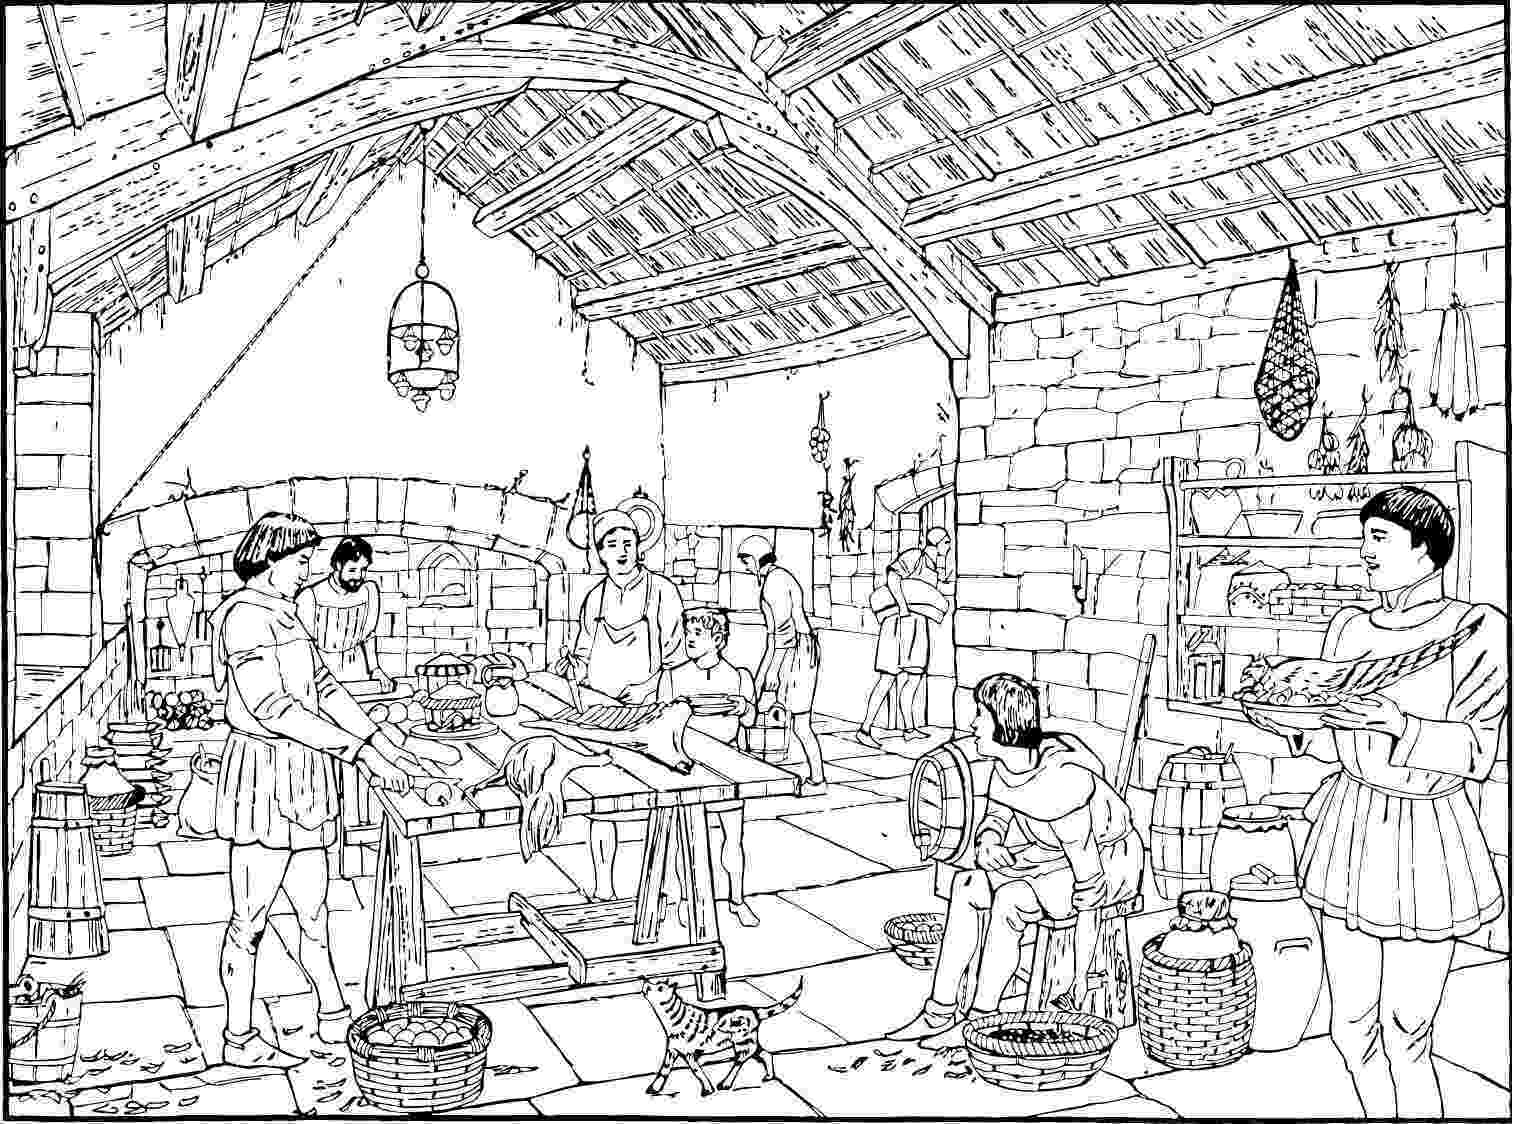 medieval colouring pages medieval bride coloring book 1 coloring pages medieval colouring pages